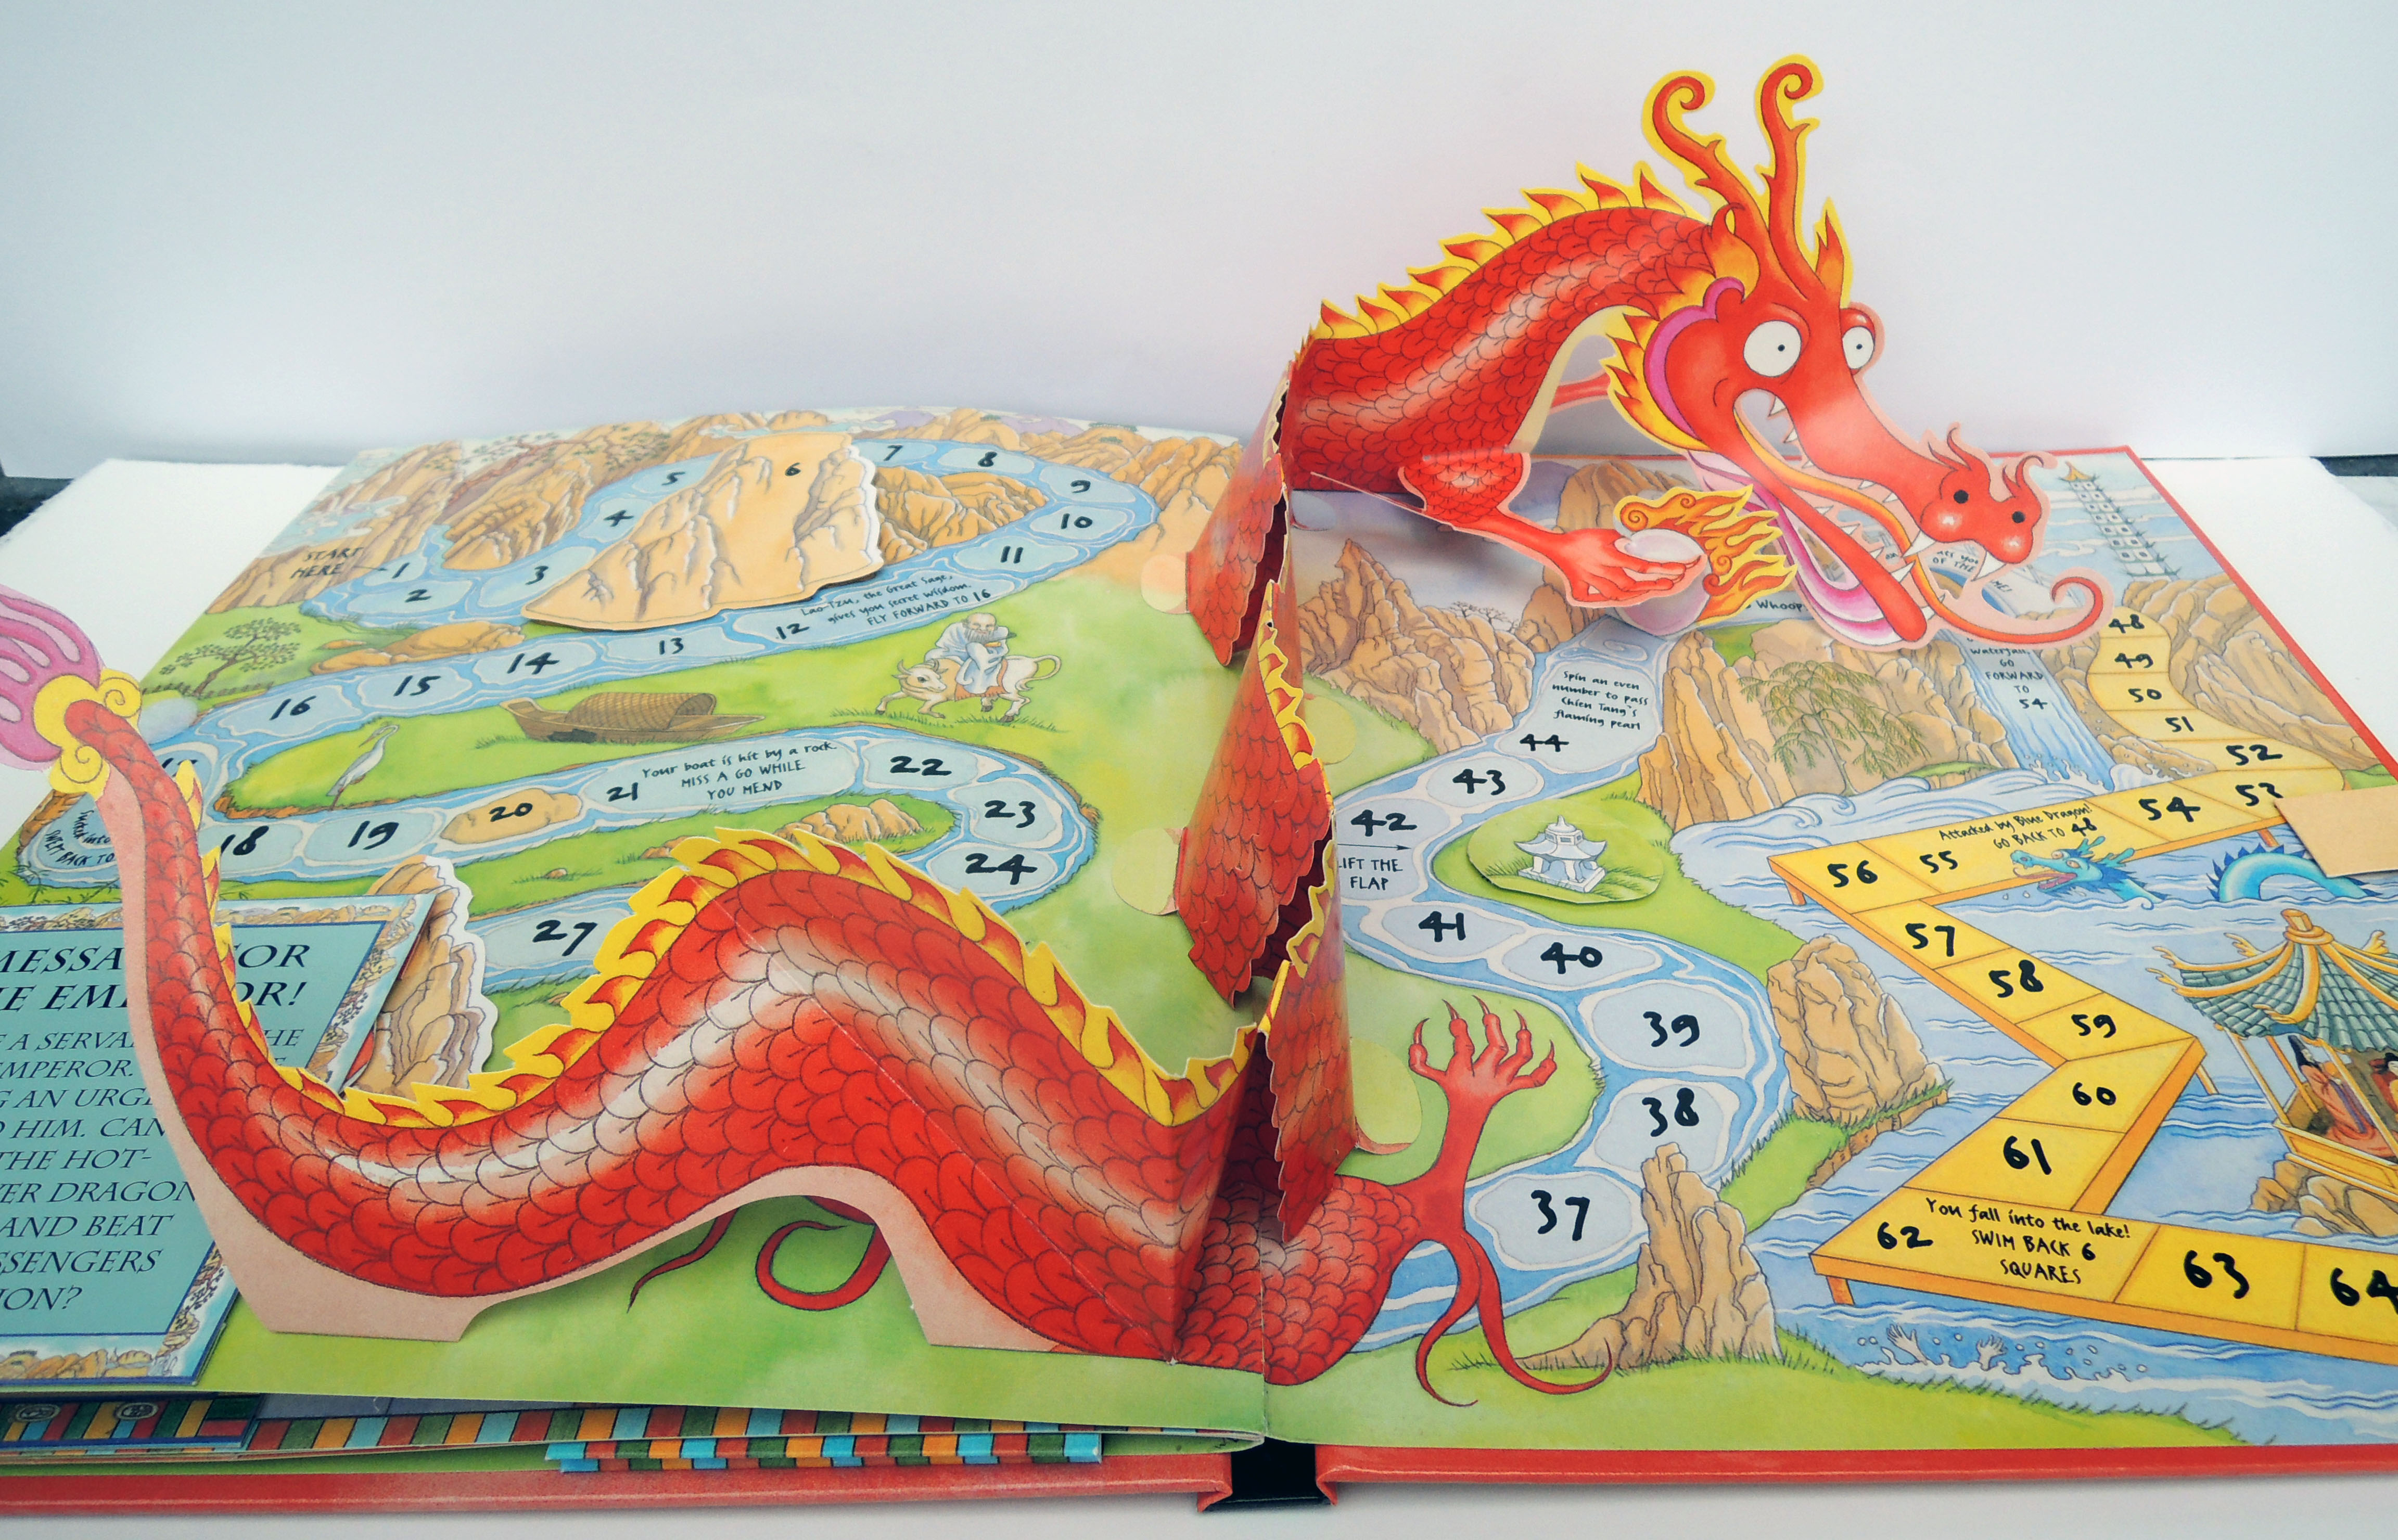 Chinese Dragon, from Book of Dragon Myths, childrens' book